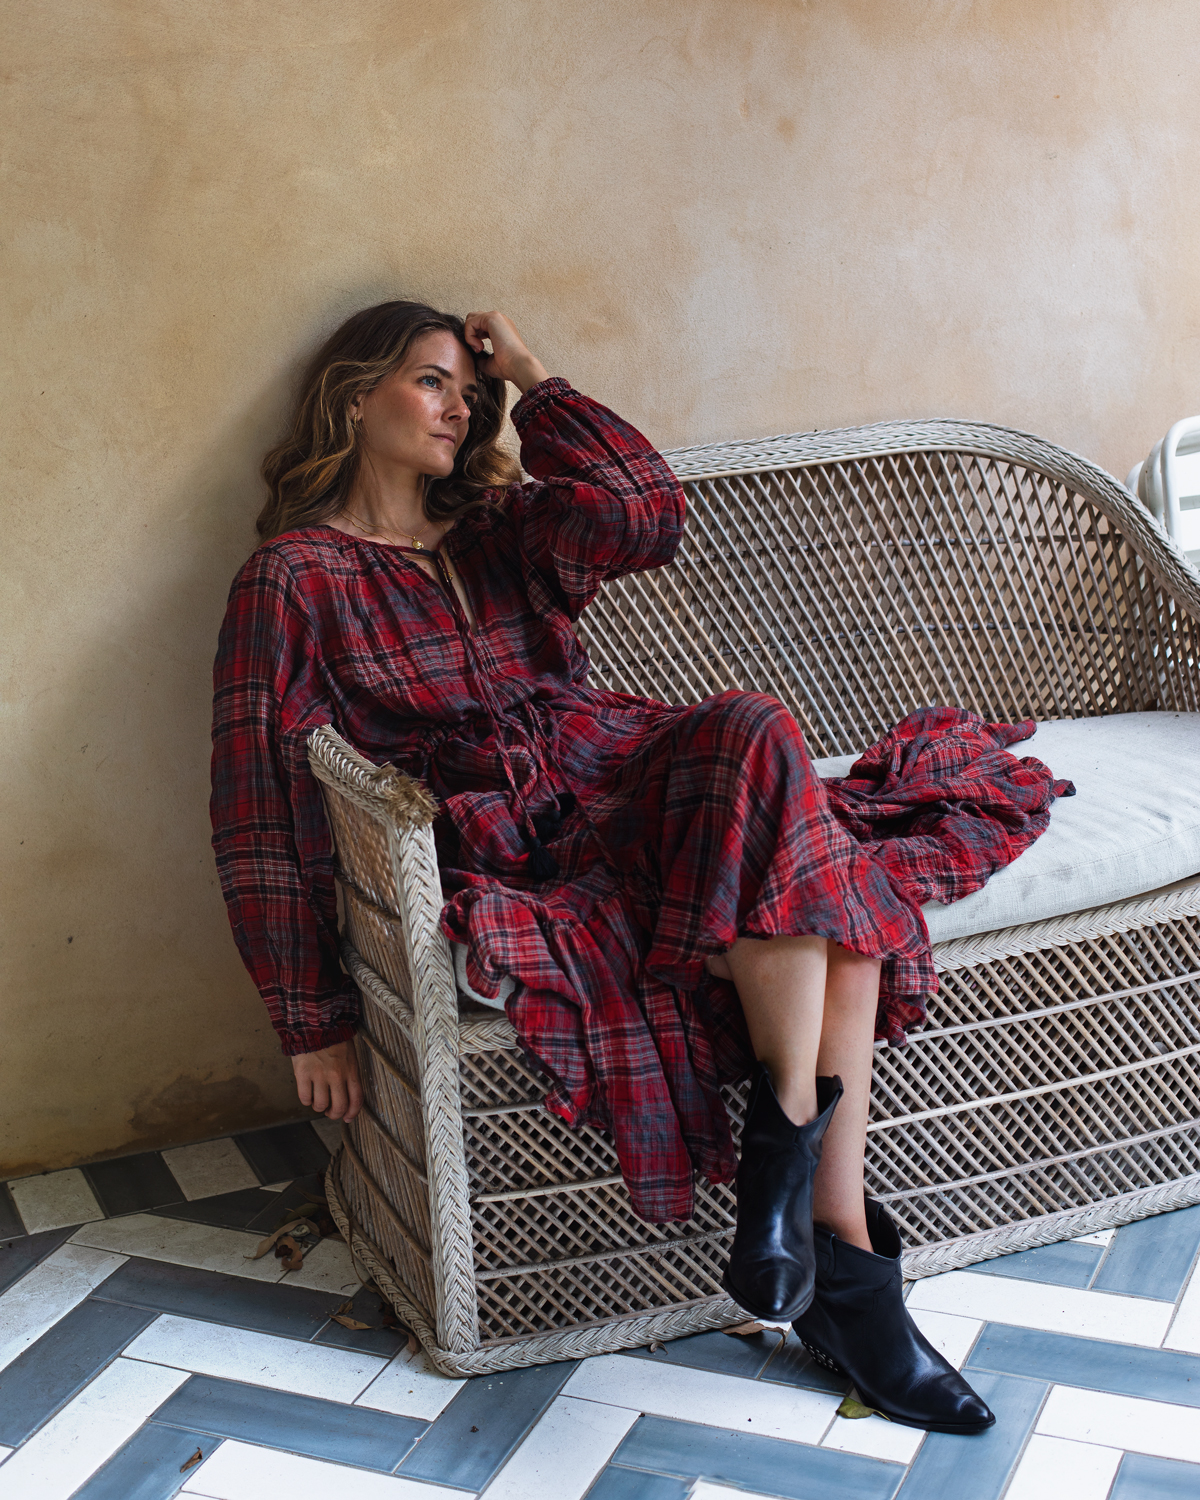 Bohemian Traders FIESTA MIDI DRESS IN BARBADOS CHERRY PLAID worn by Inspiring Wit fashion blogger Jenelle with Isabel Marant boots